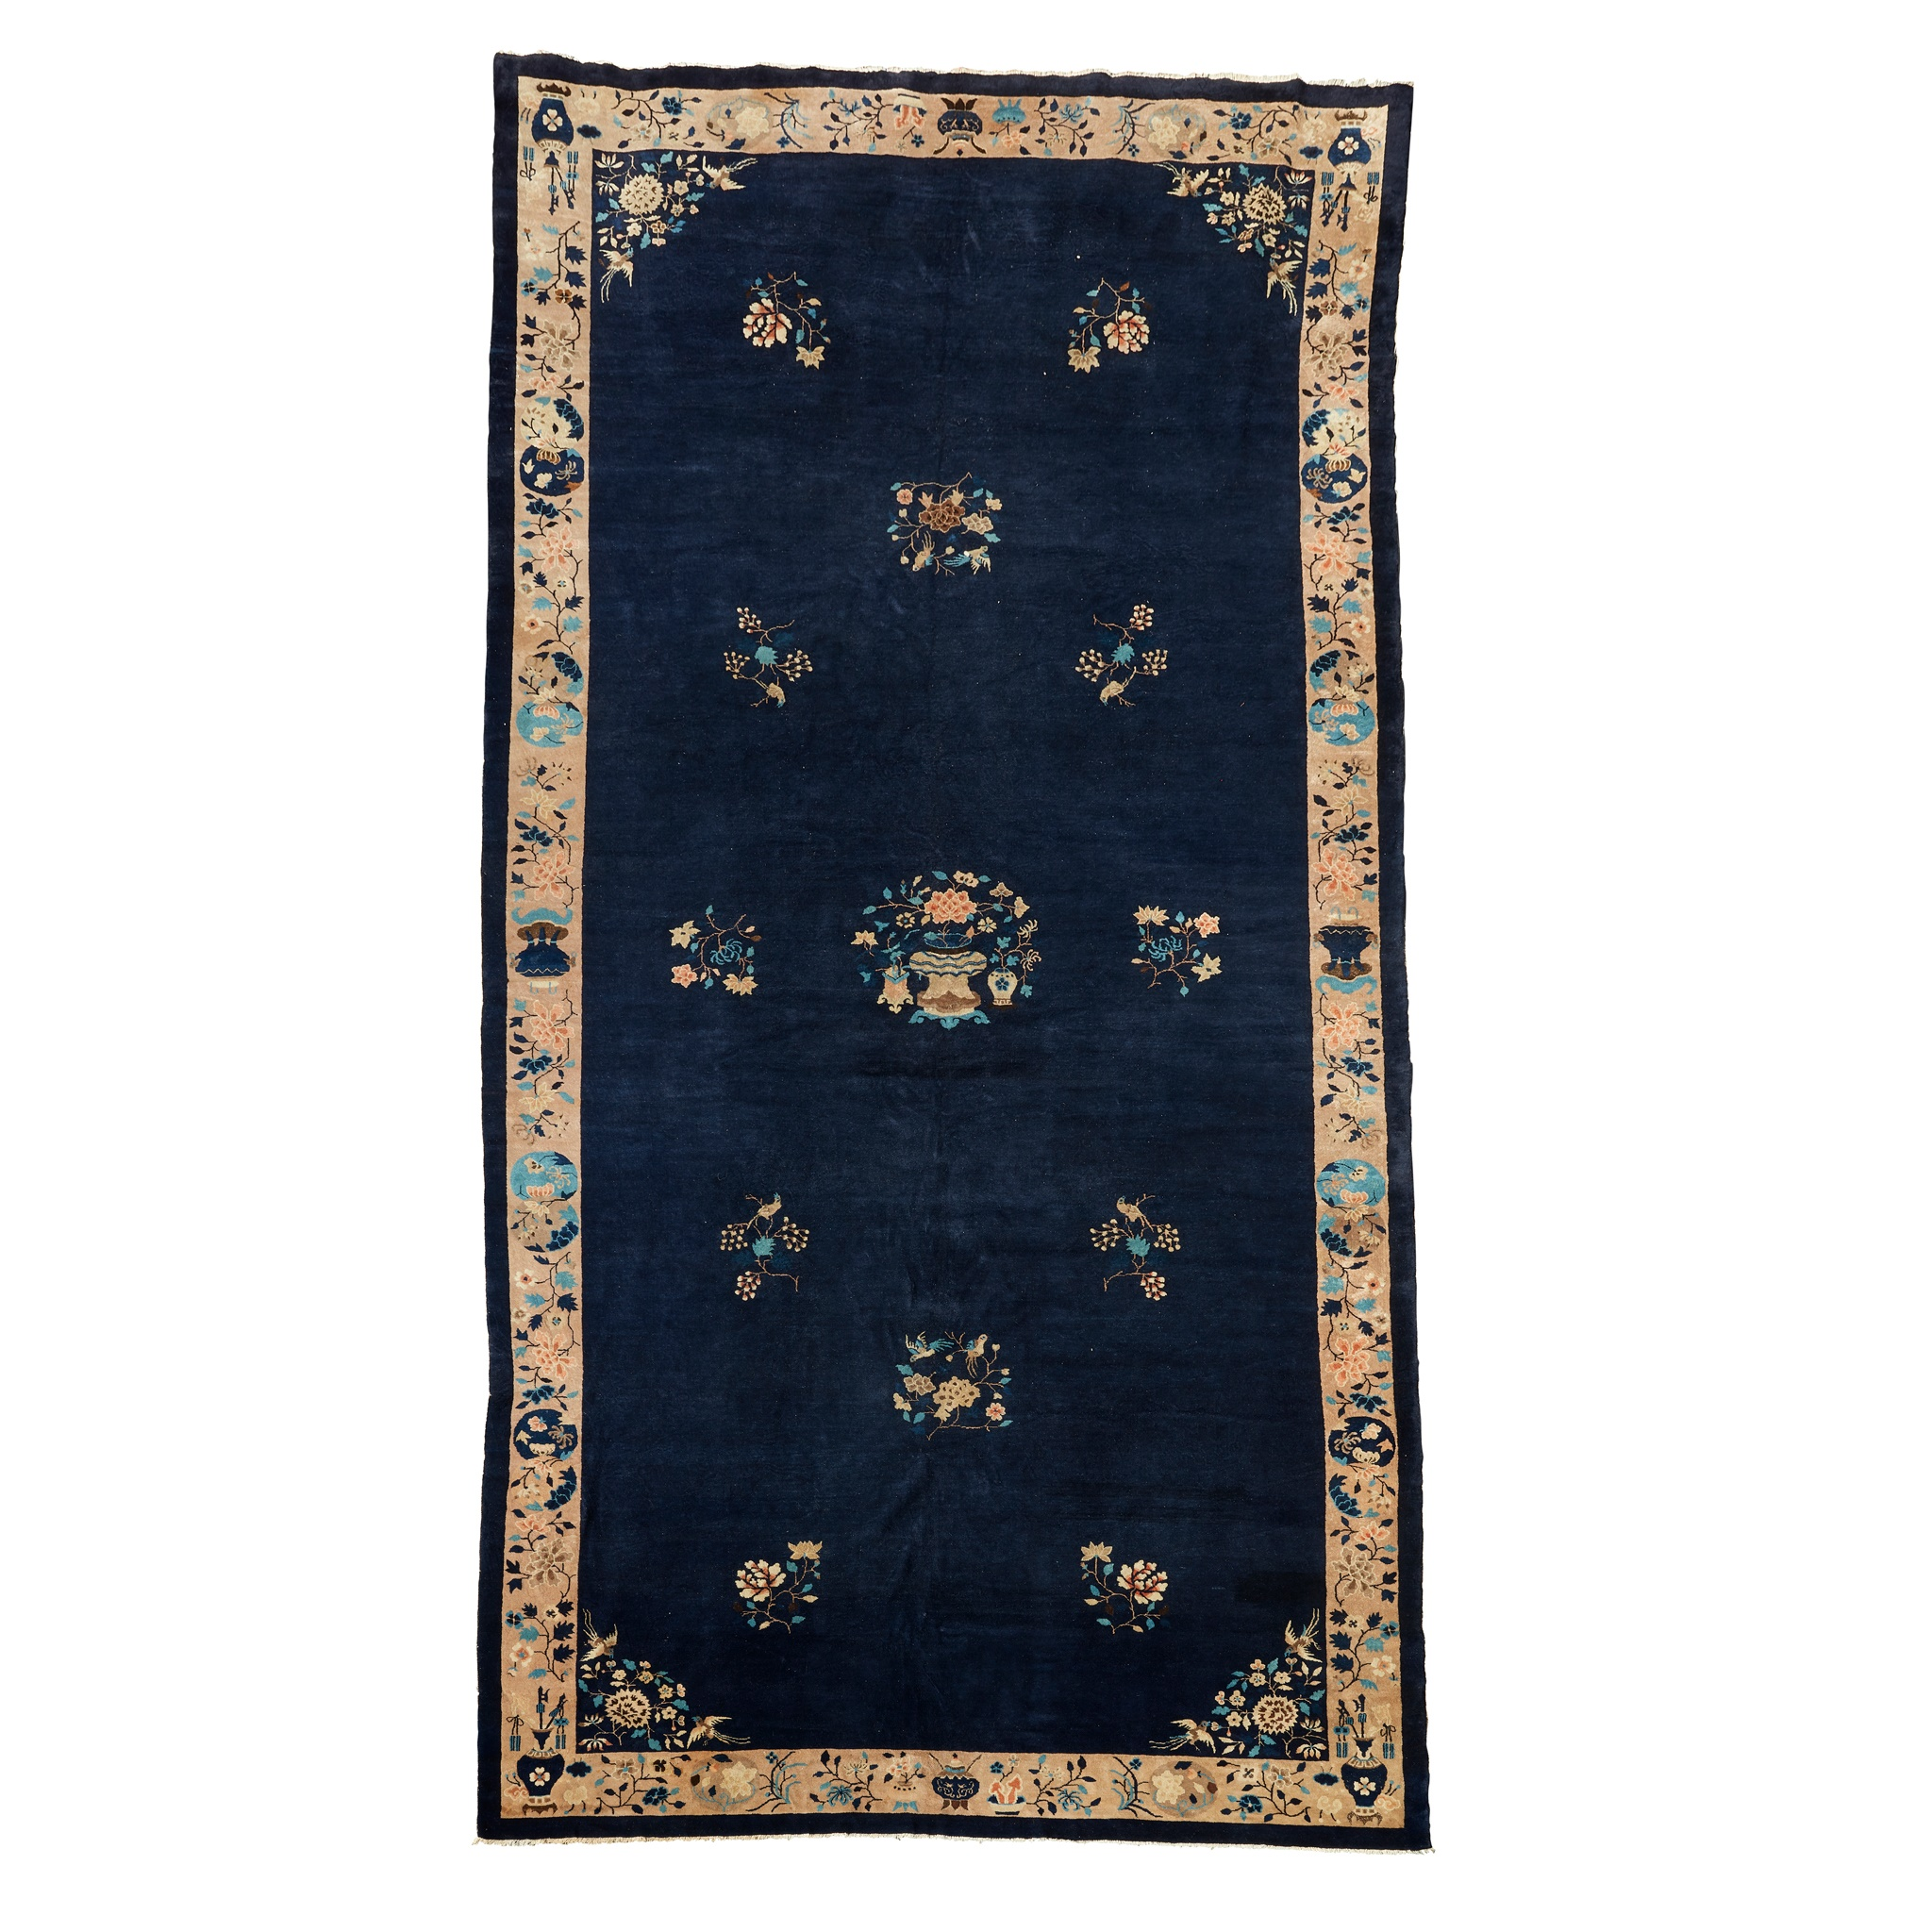 LARGE CHINESE CARPET EARLY 20TH CENTURY